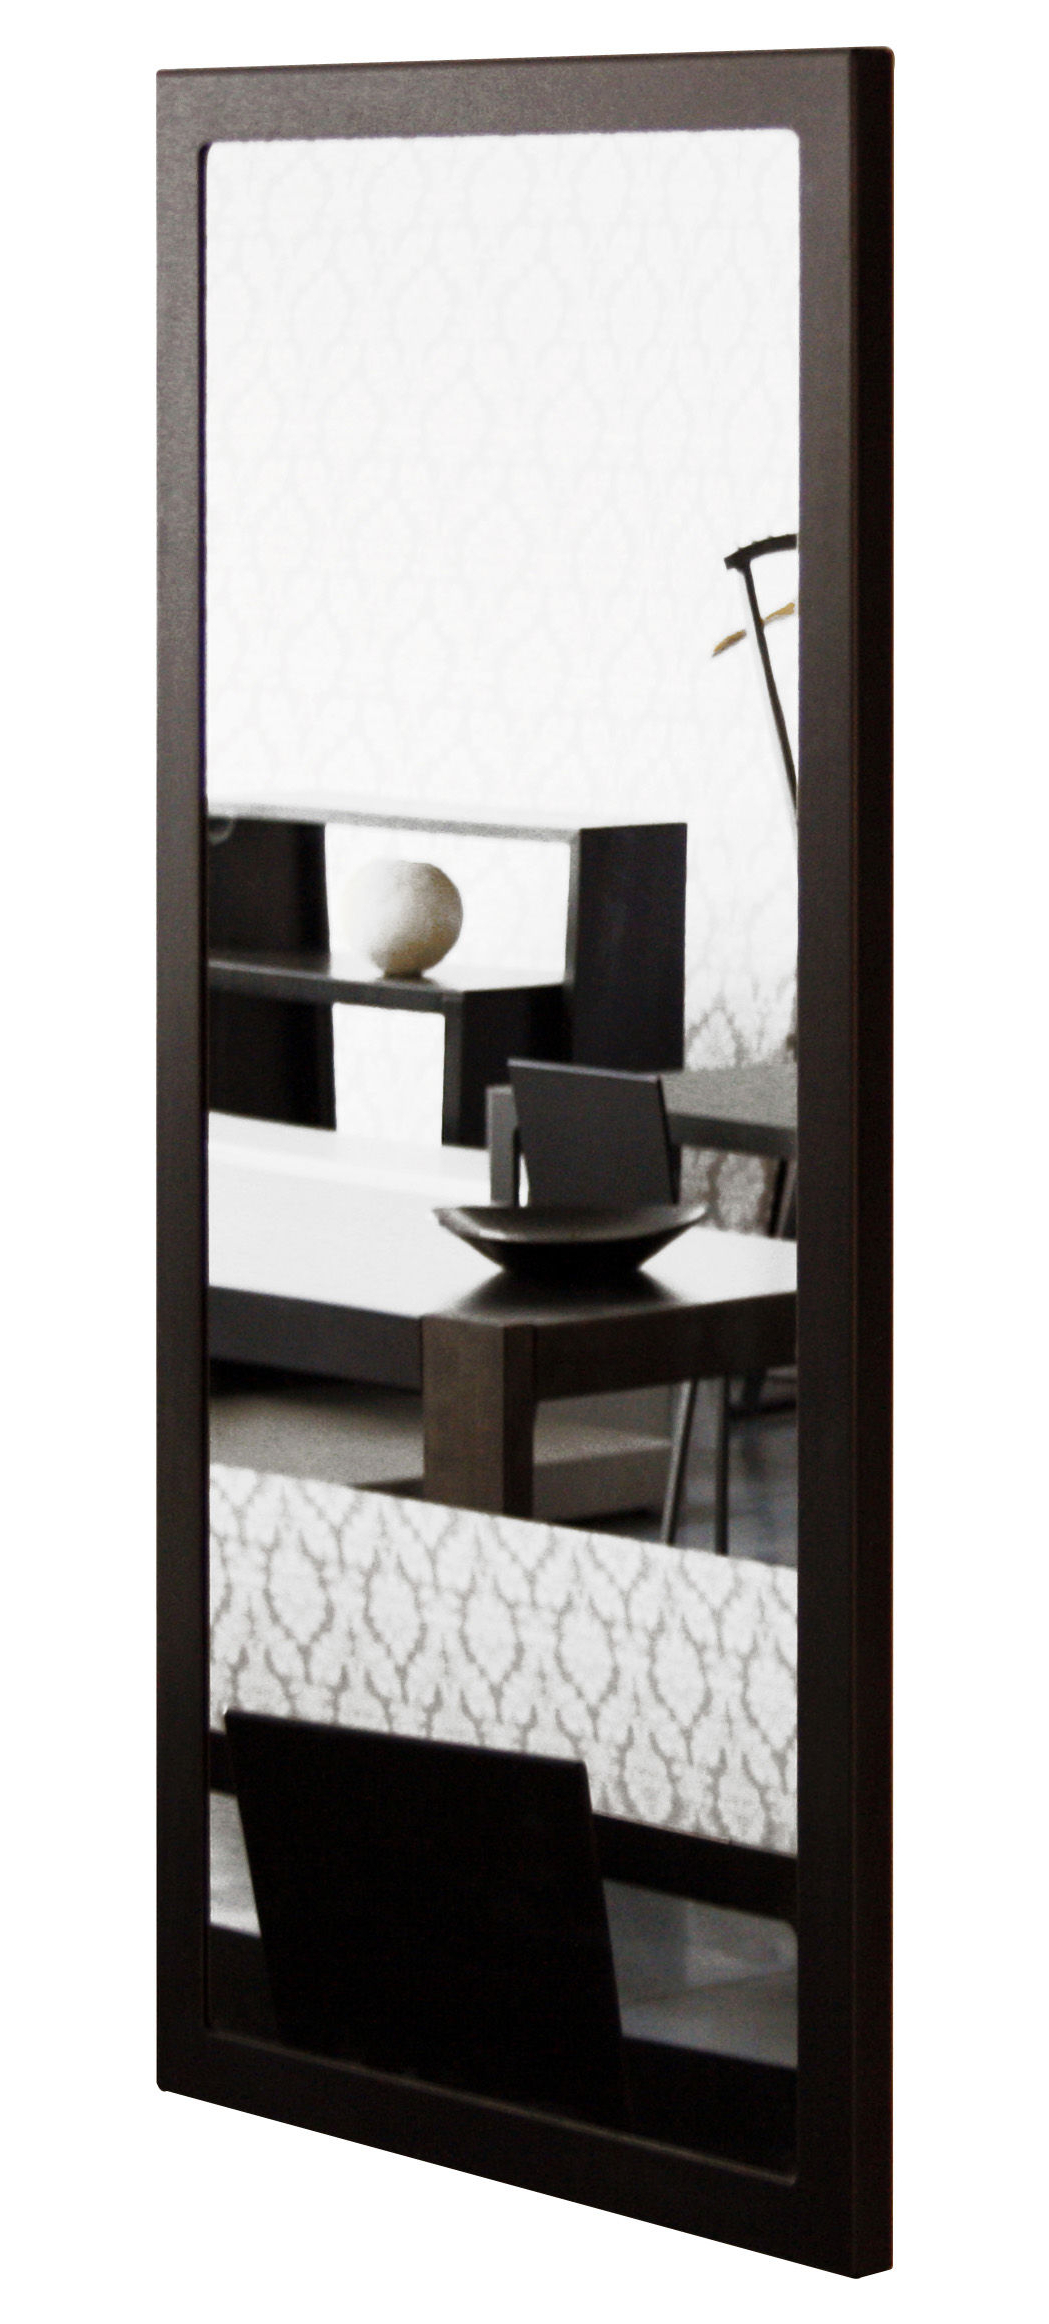 Little Frame Wall Mirror – 60 X 120 Cmzeus Inside Fashionable Black Framed Wall Mirrors (Gallery 20 of 20)